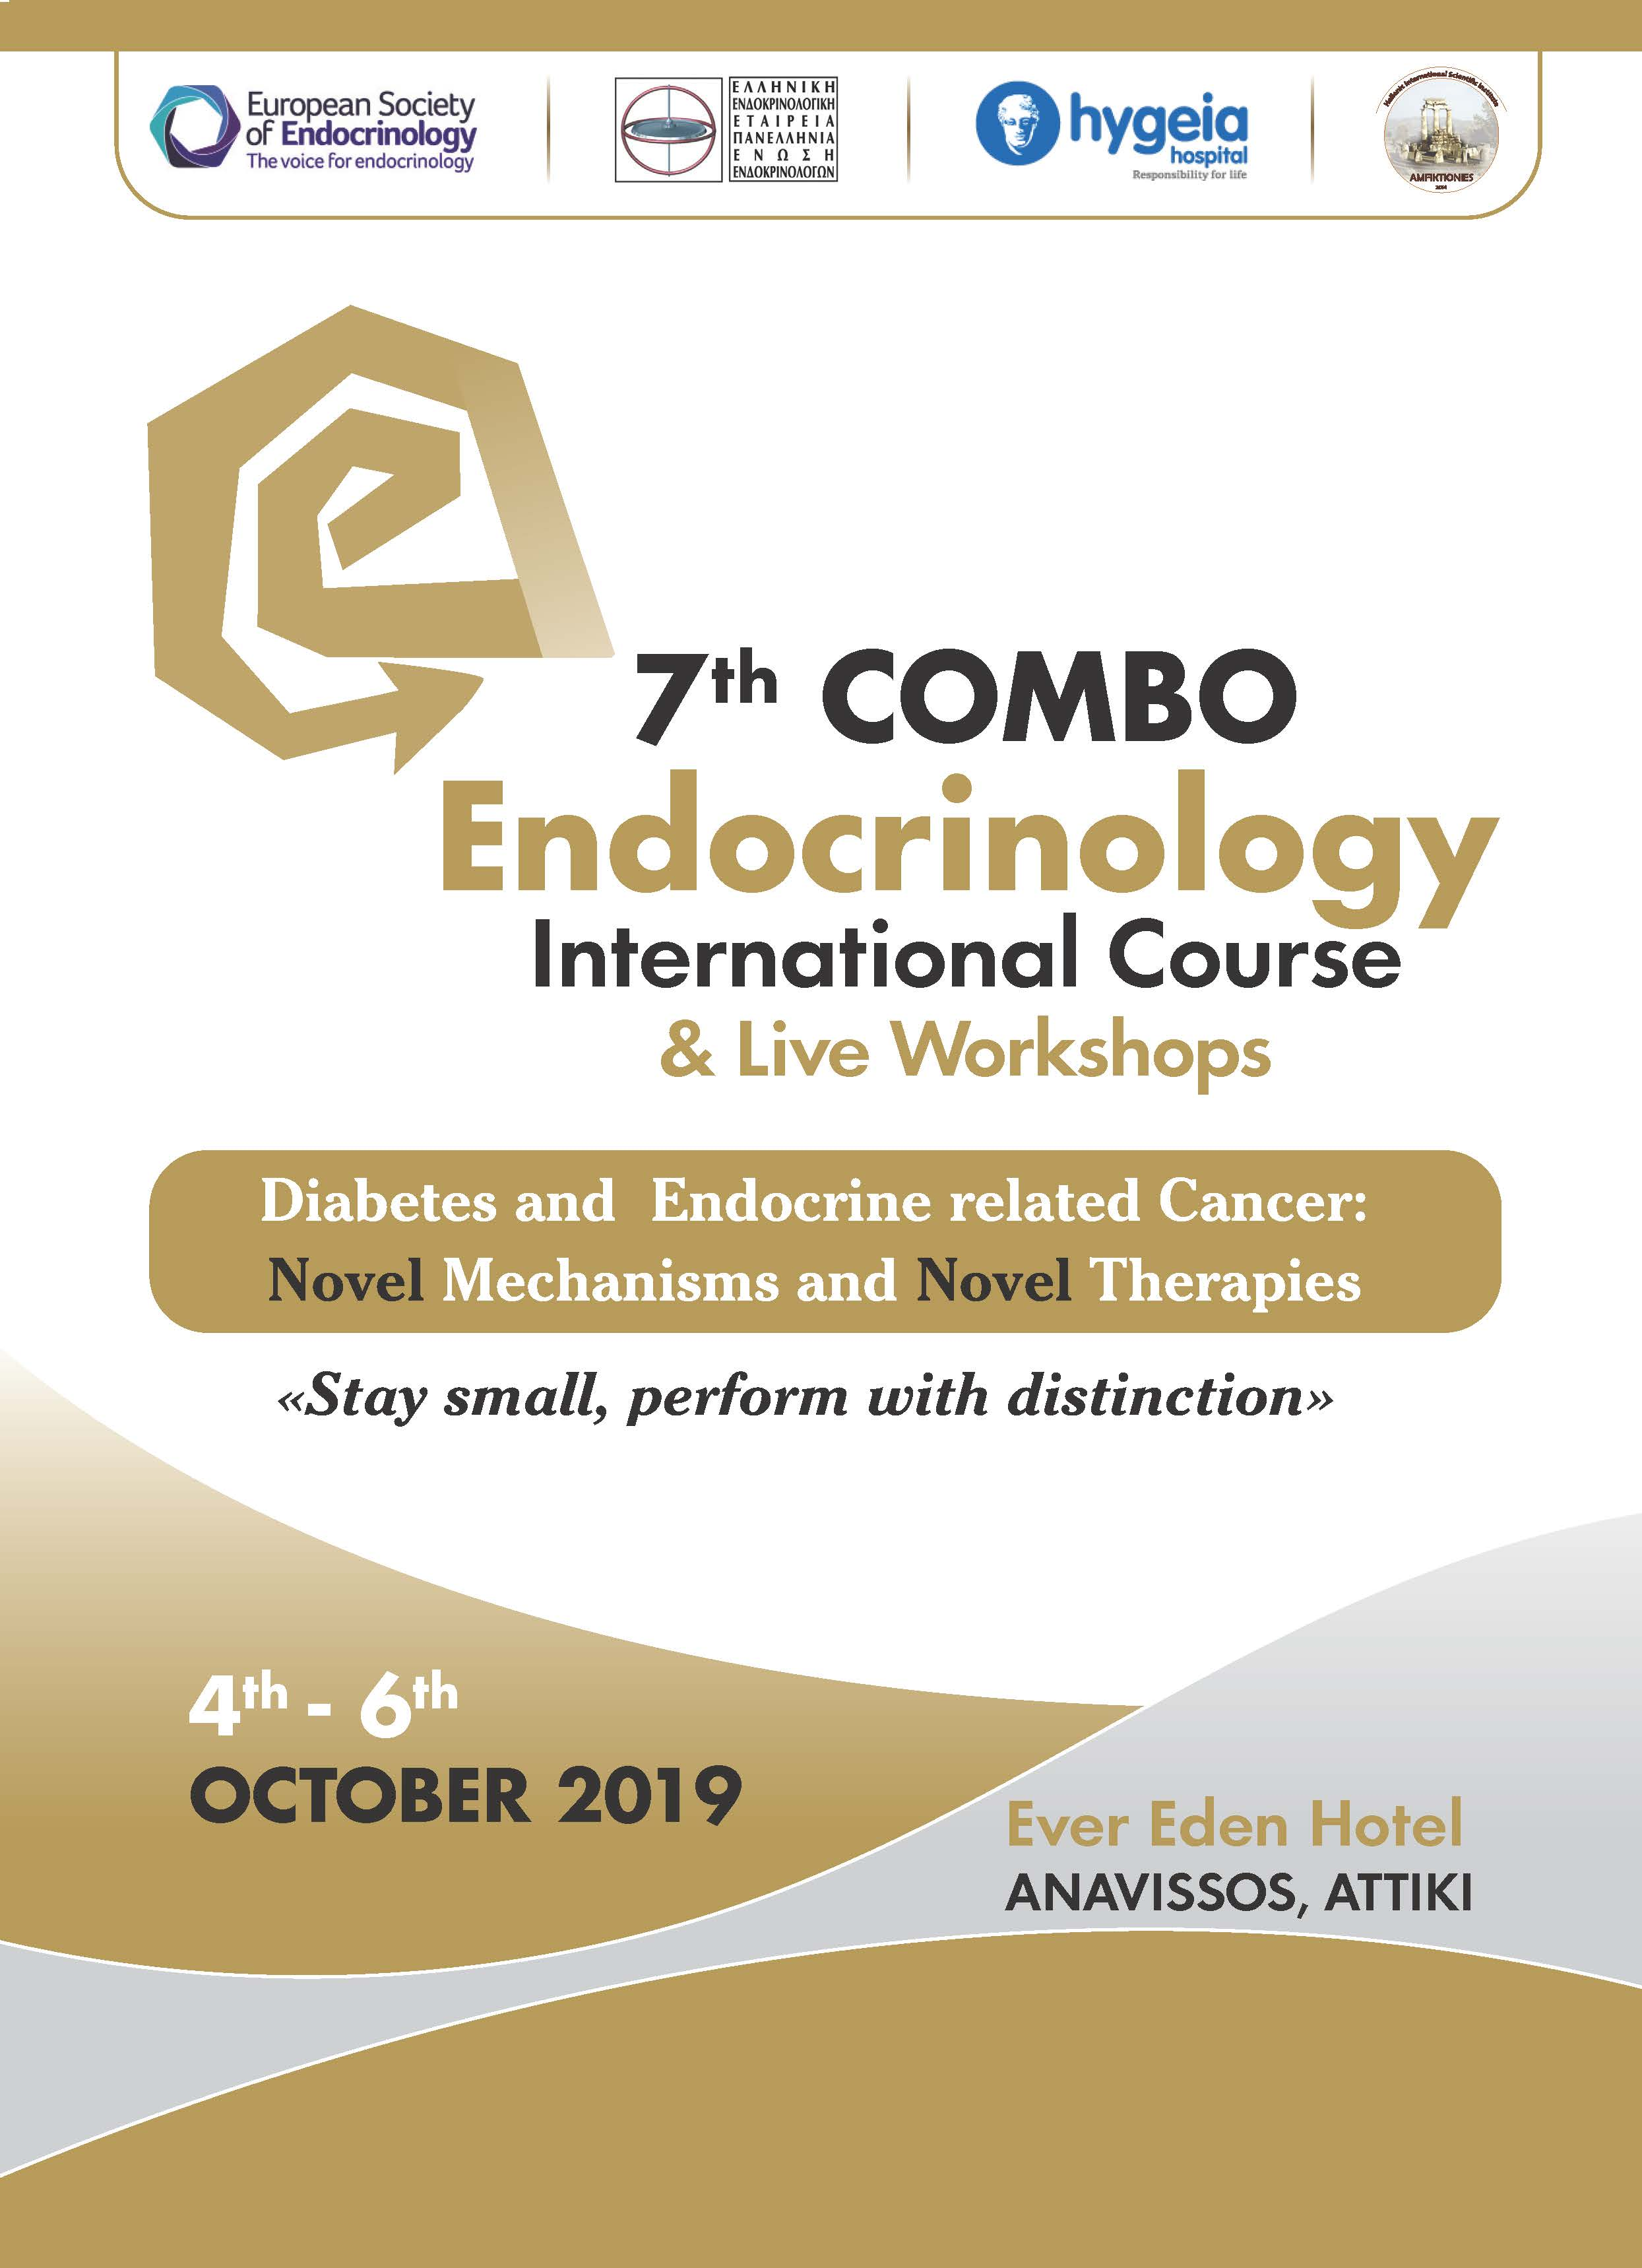 7th COMBO Endocrinology Course, 4-6/10/2019, Ever Eden Hotel